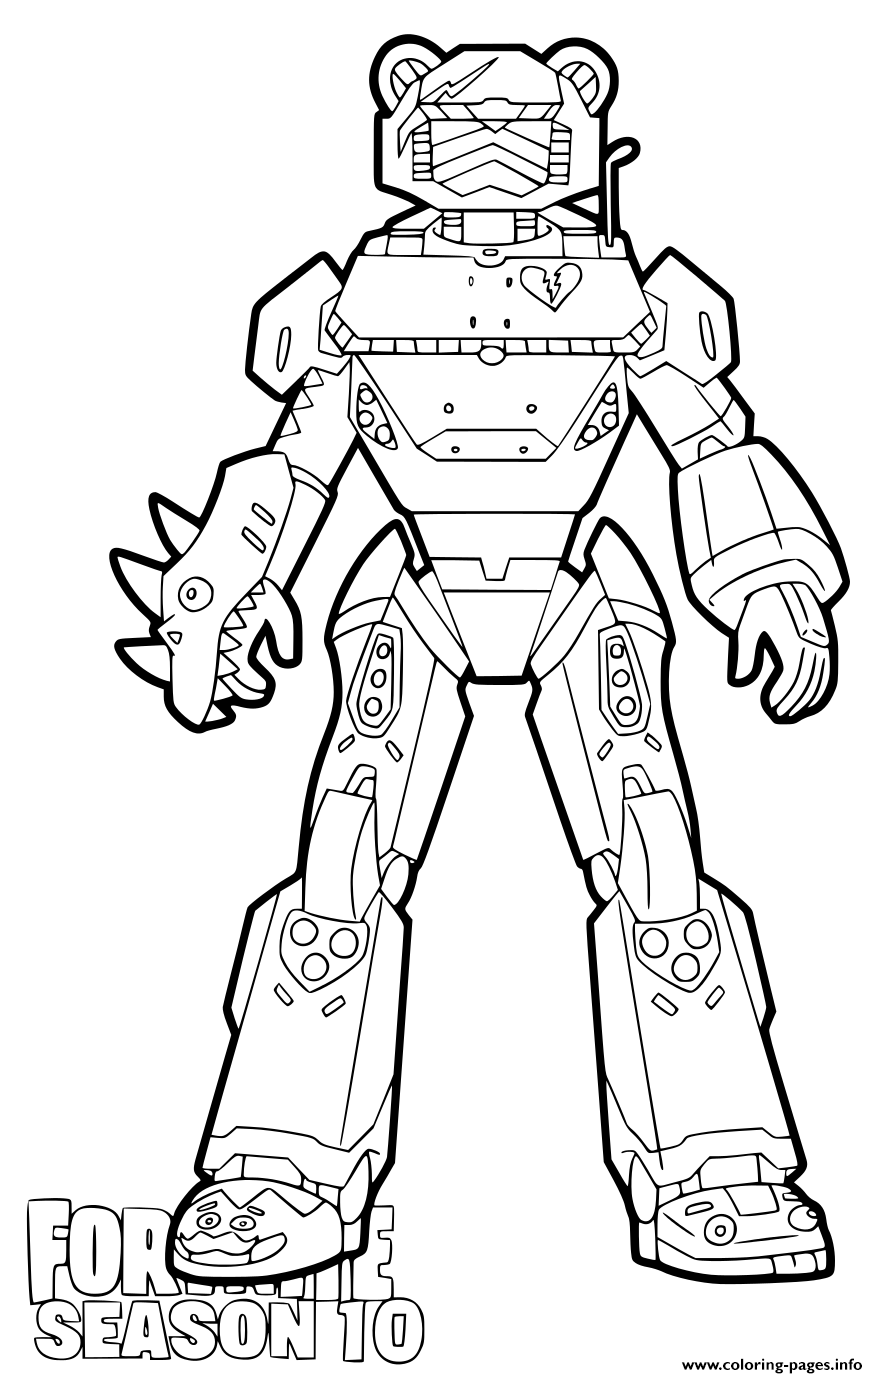 Mecha Team Leader Fortnite Season 10 Coloring Pages Printable